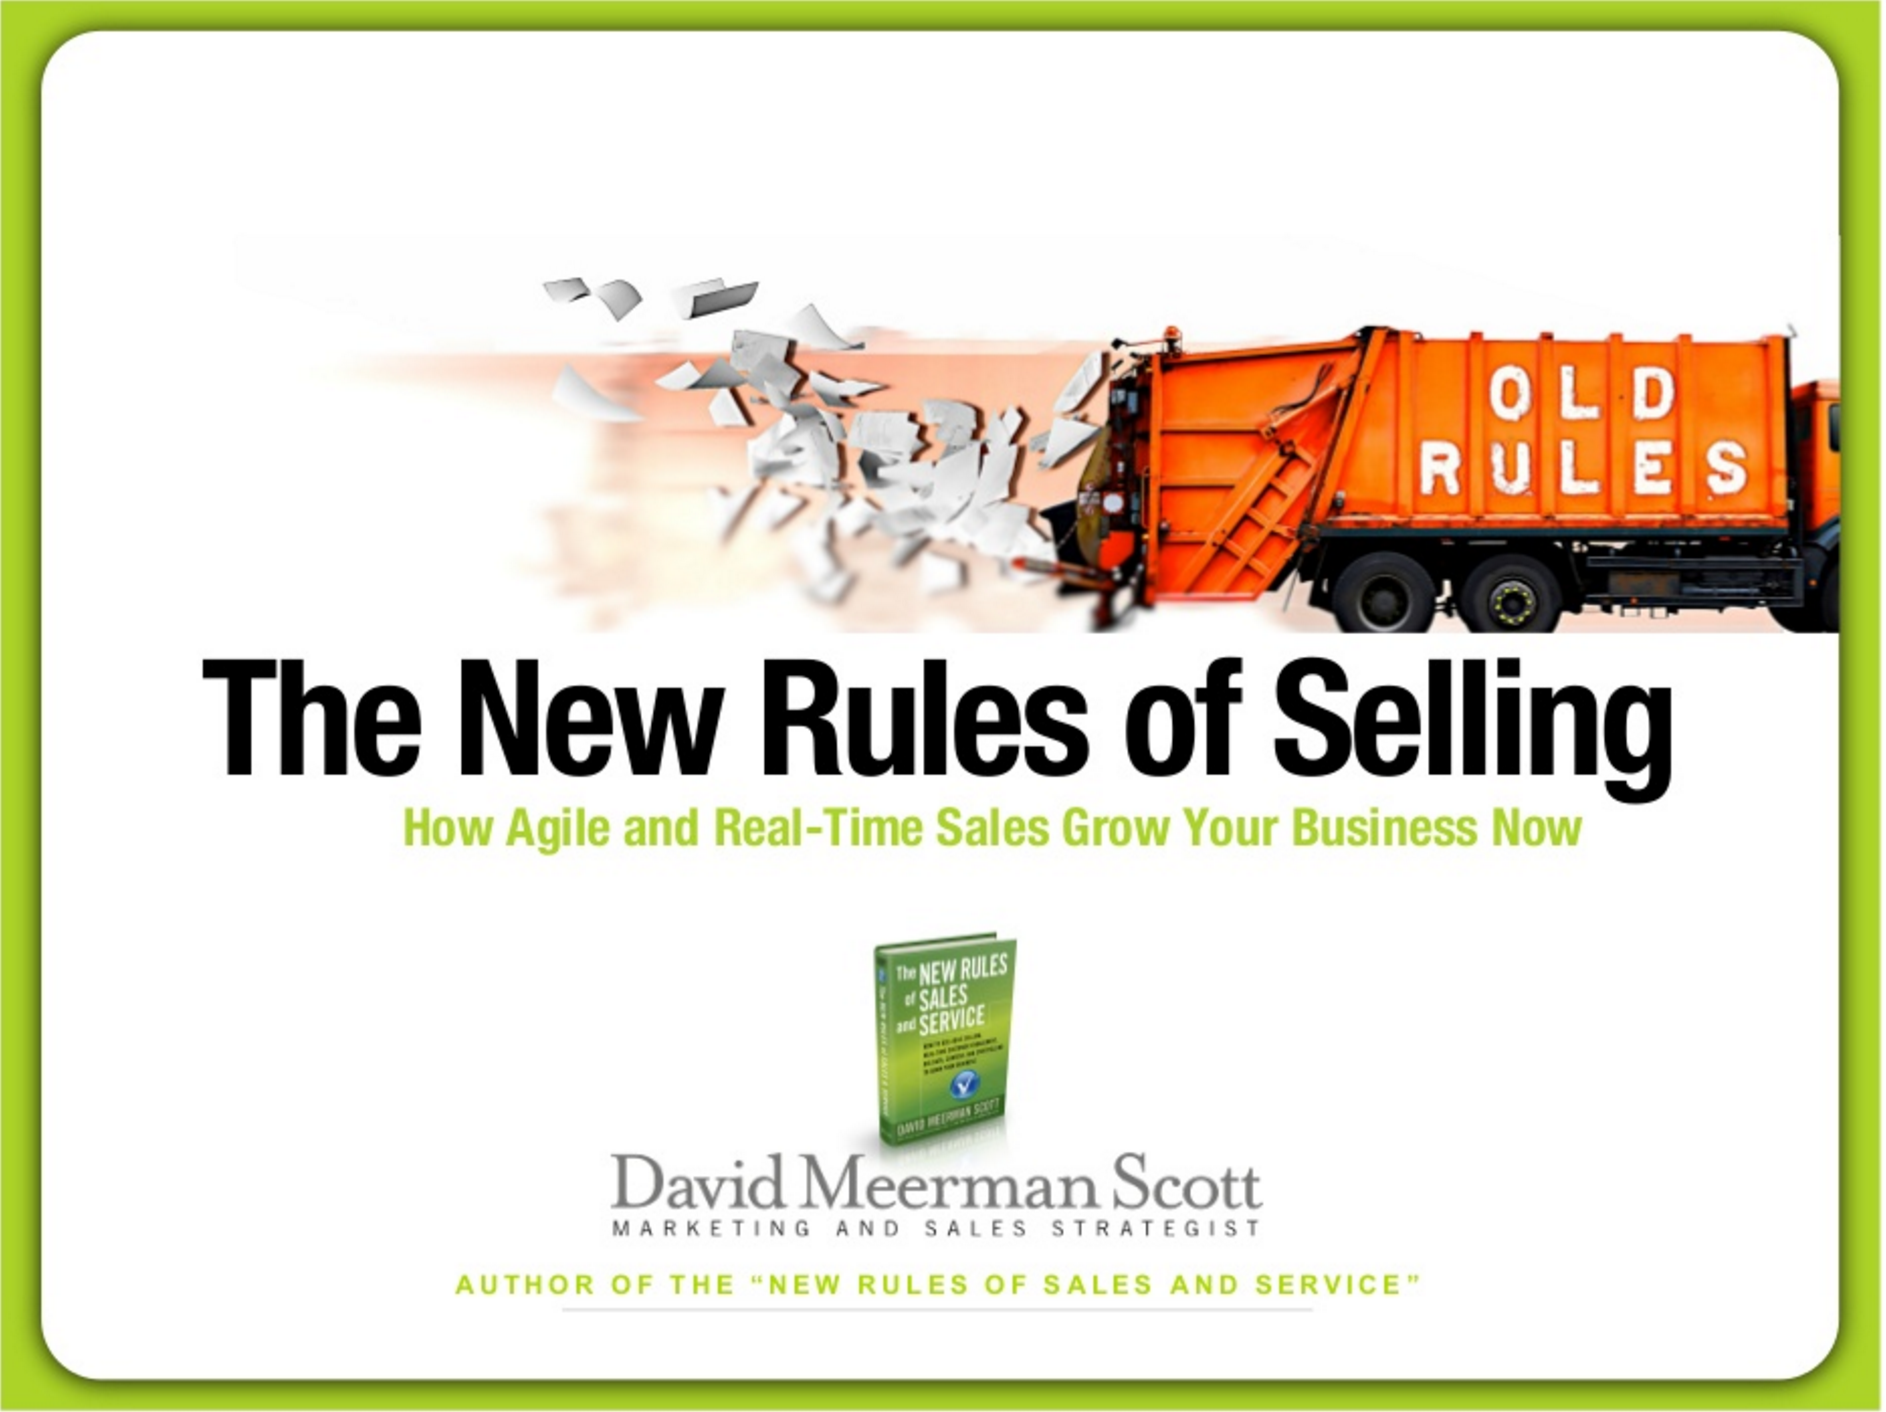 The New Rules of Selling